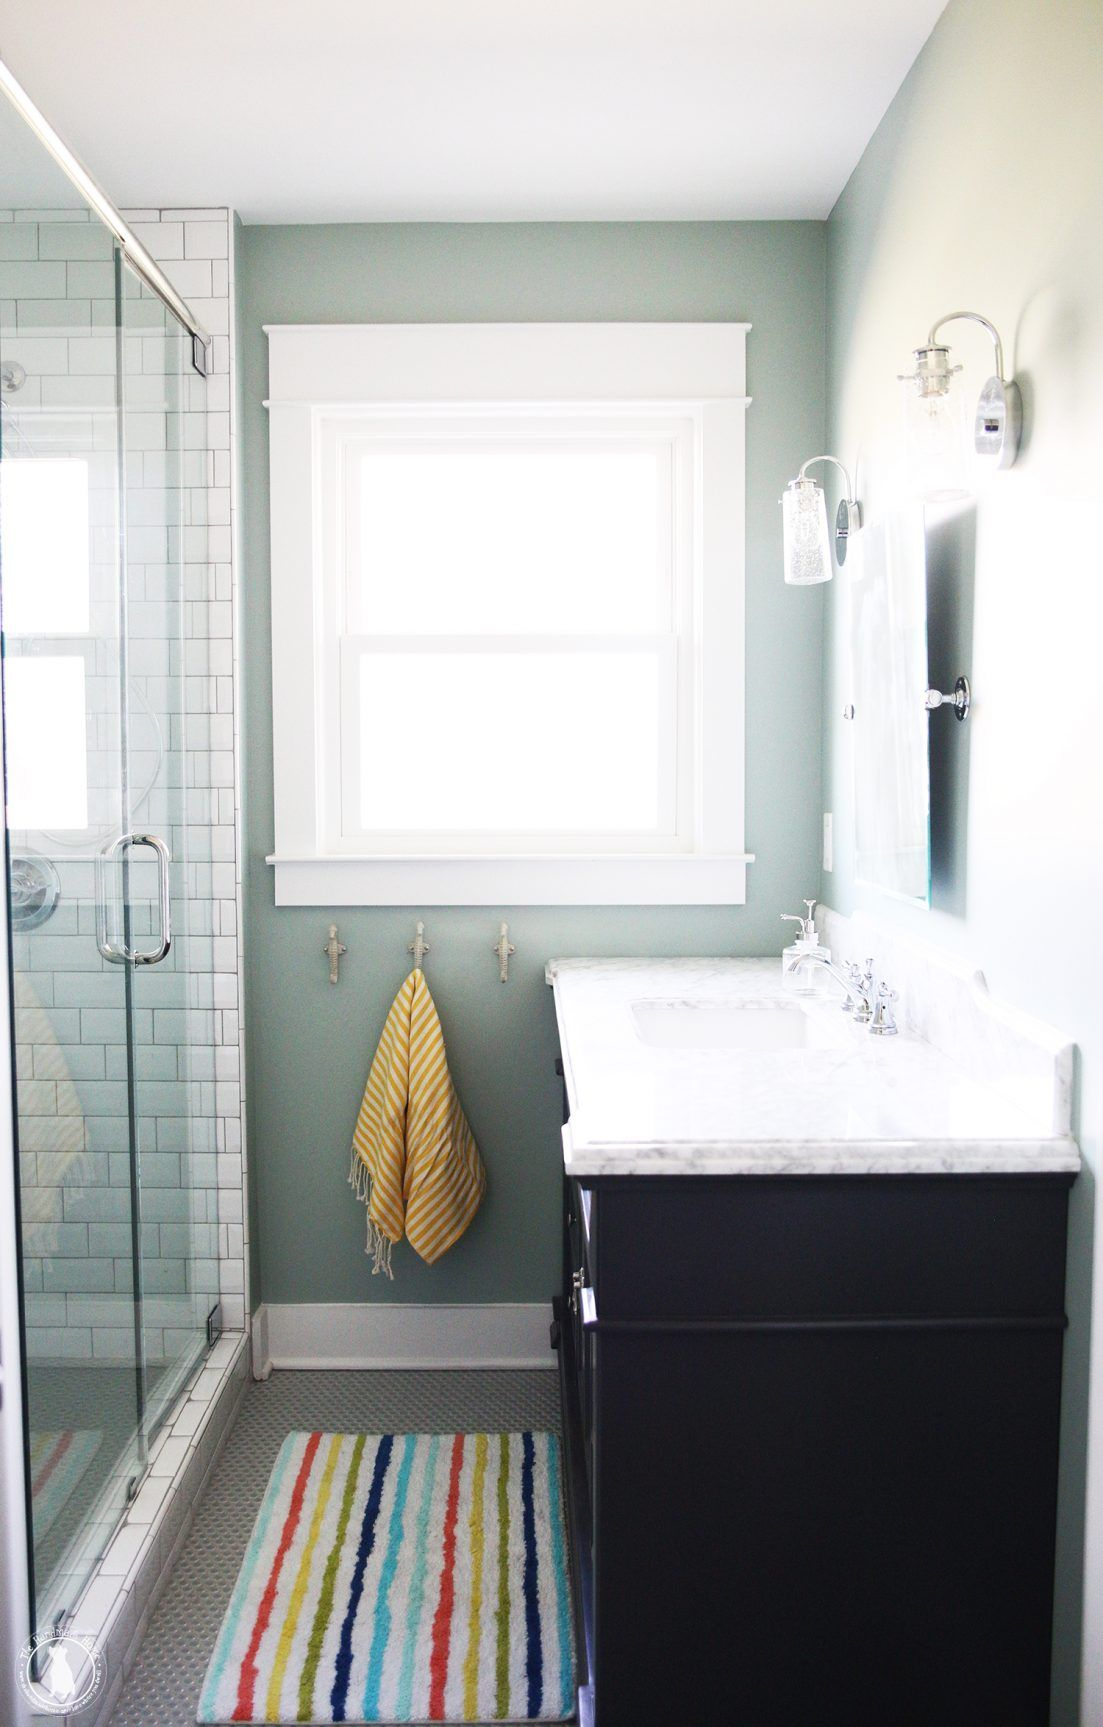 sisco hallway bath redo - The Handmade Home | Bathrooms | Pinterest ...